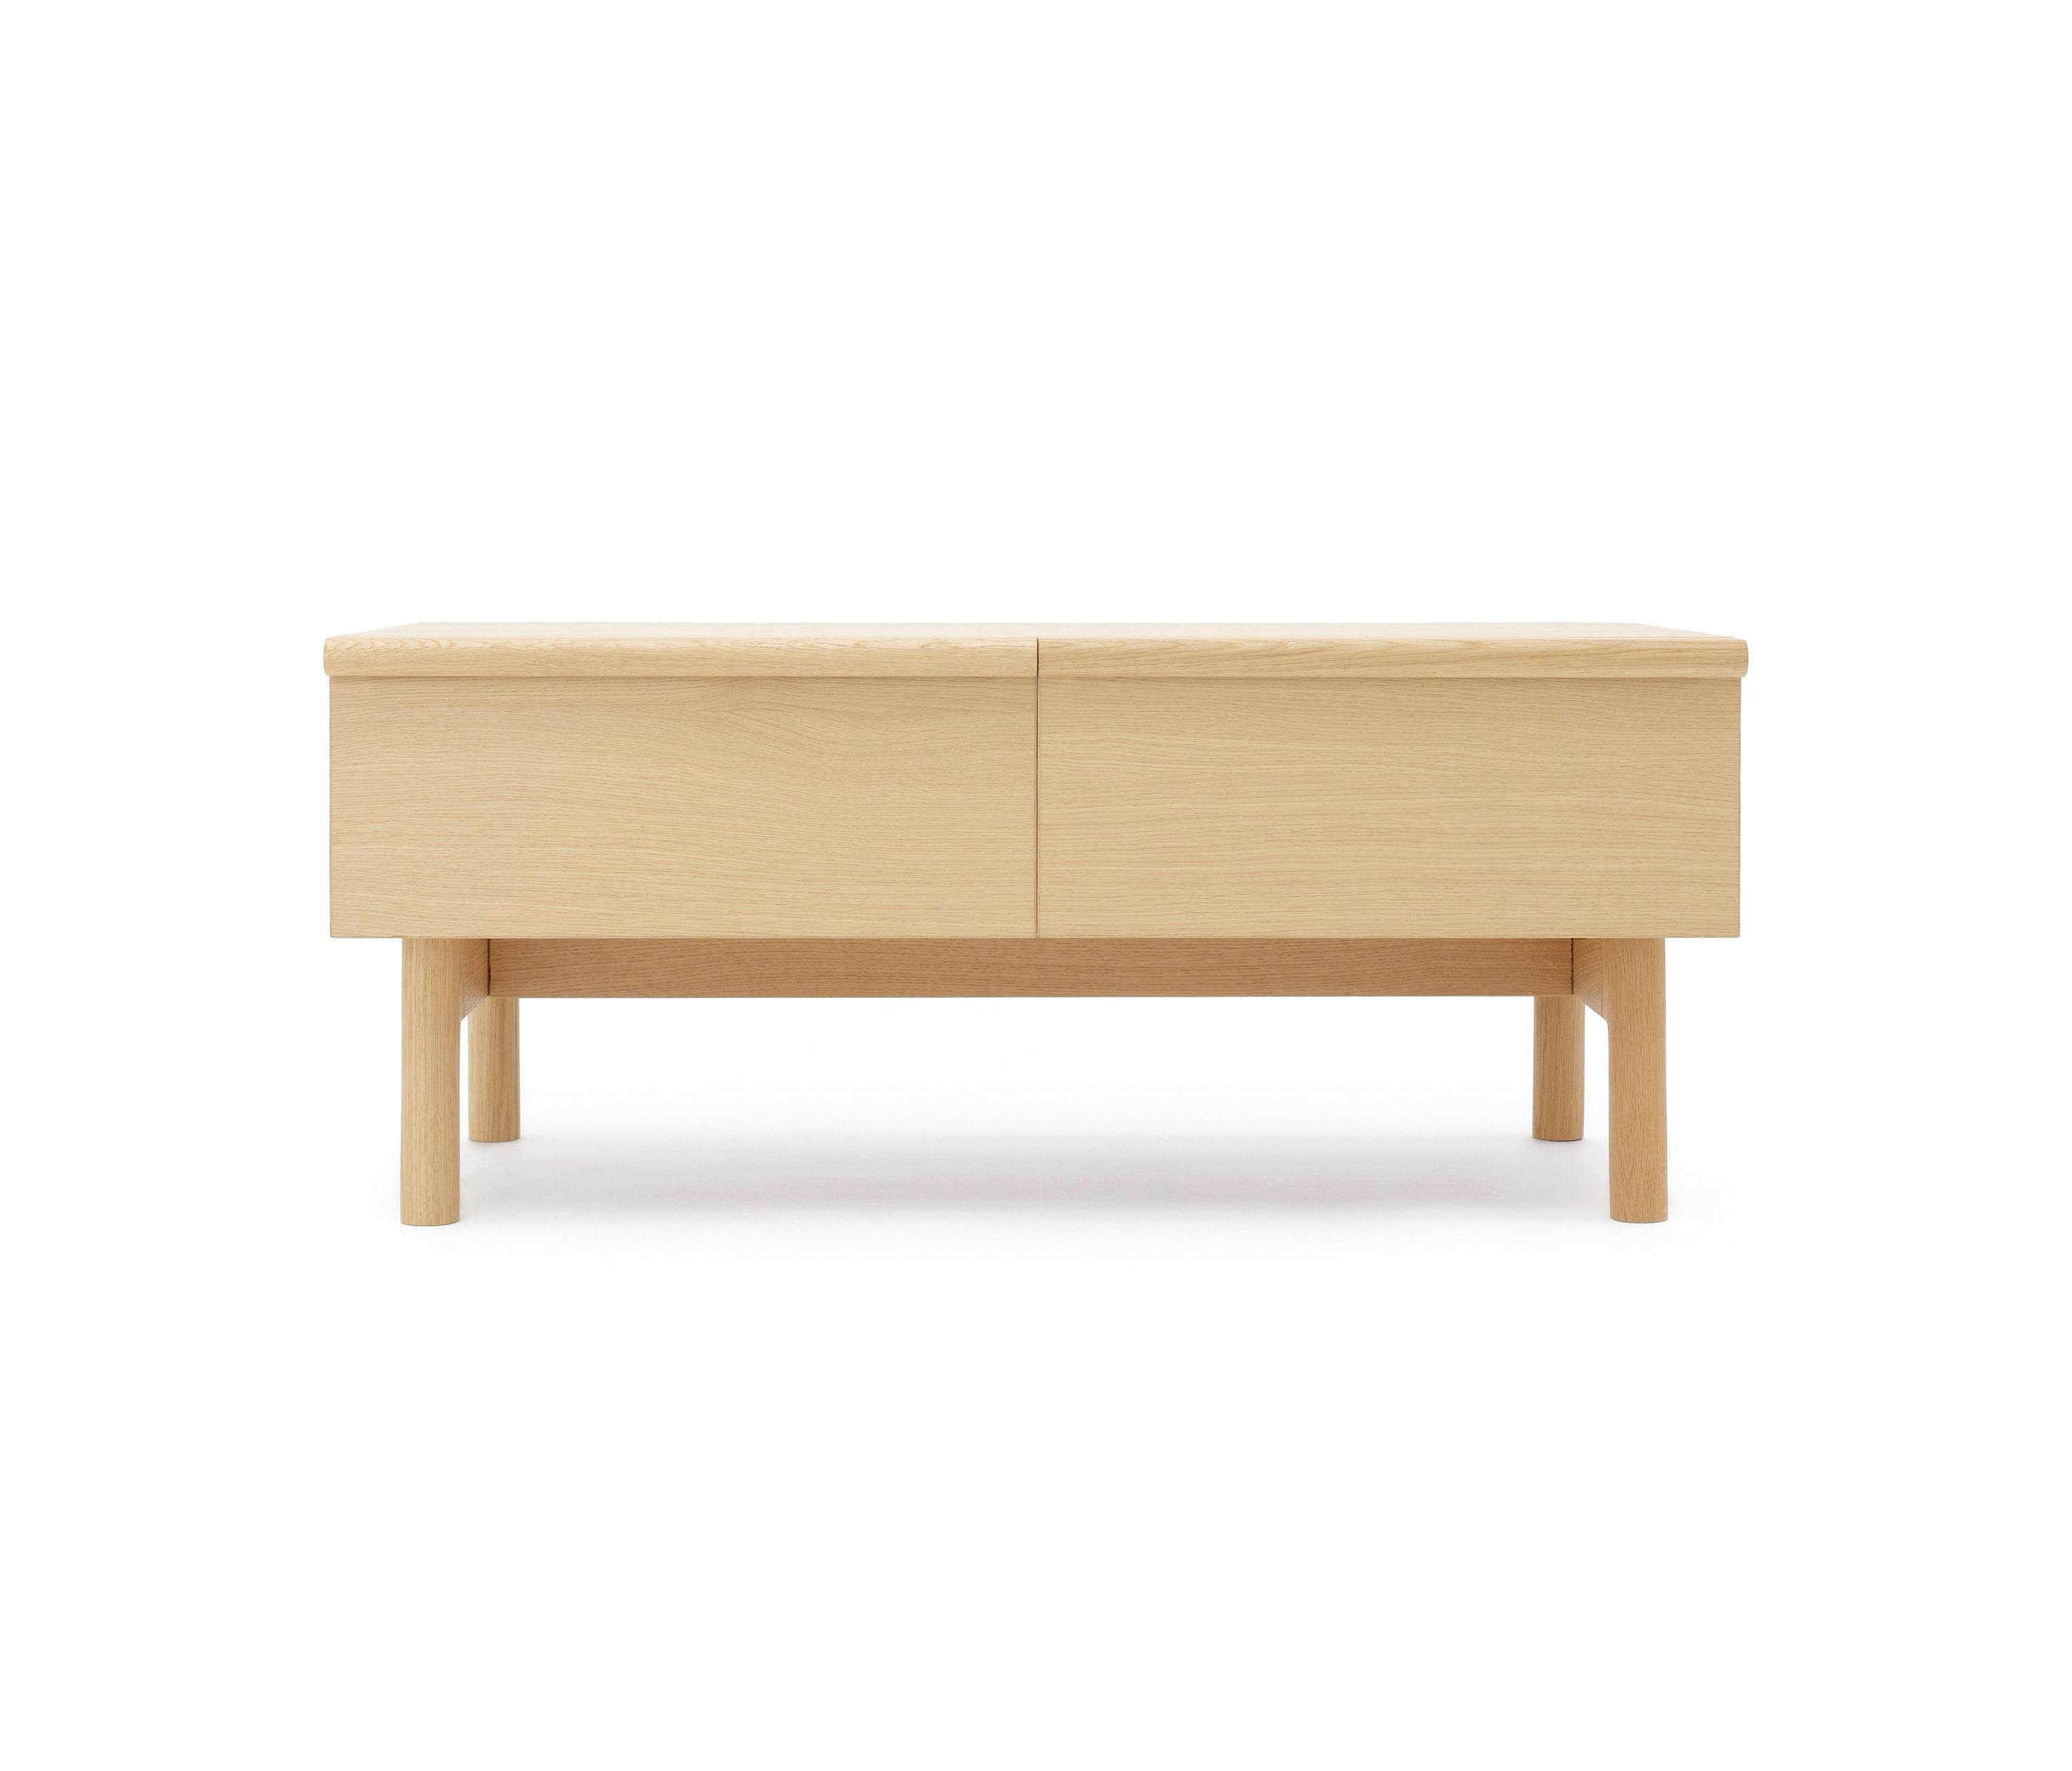 Low Sideboard With Two Drawers - Sideboards From Bautier | Architonic pertaining to Low Sideboards (Image 12 of 30)